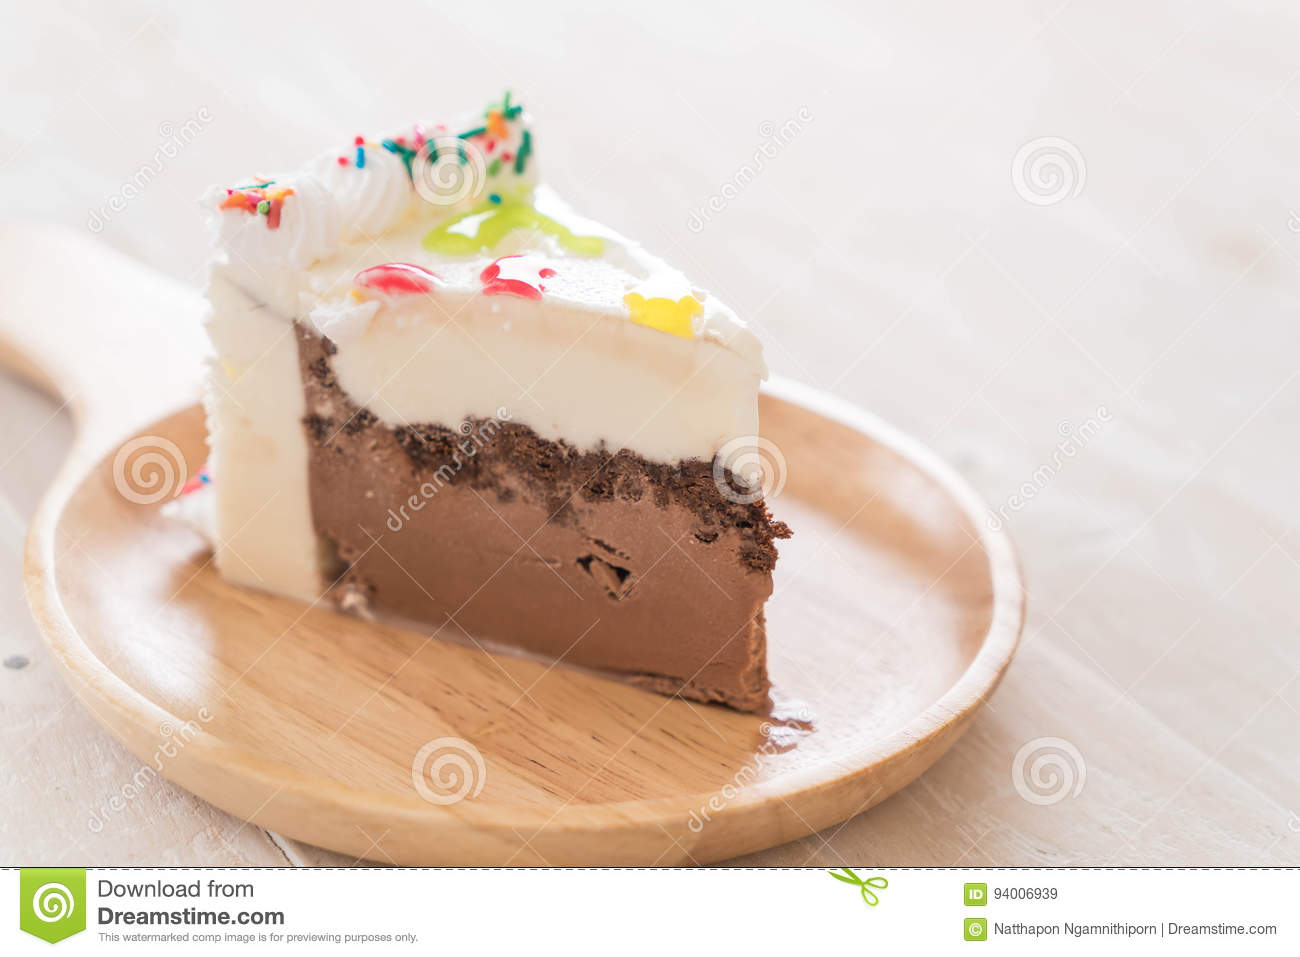 Happy Birthday Cake On Table Stock Image Image Of Celebration